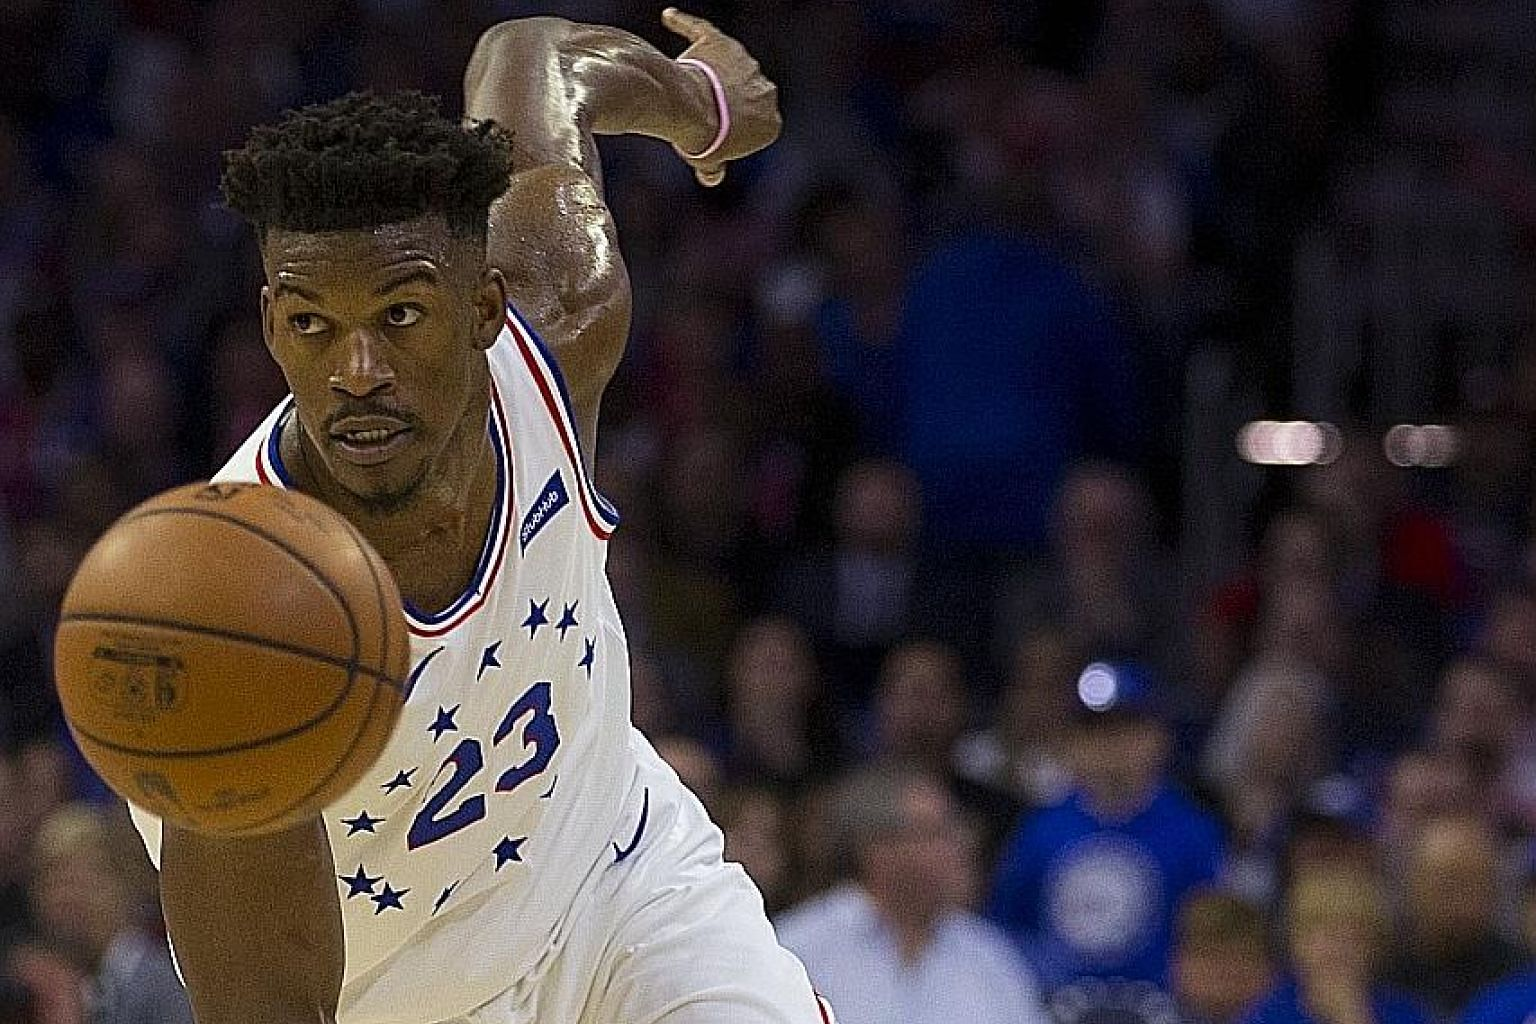 Jimmy Butler was another player targeted by the New York Knicks but ultimately fell through their clutches. The four-time All-Star joined the Miami Heat instead. PHOTO: AGENCE FRANCE-PRESSE